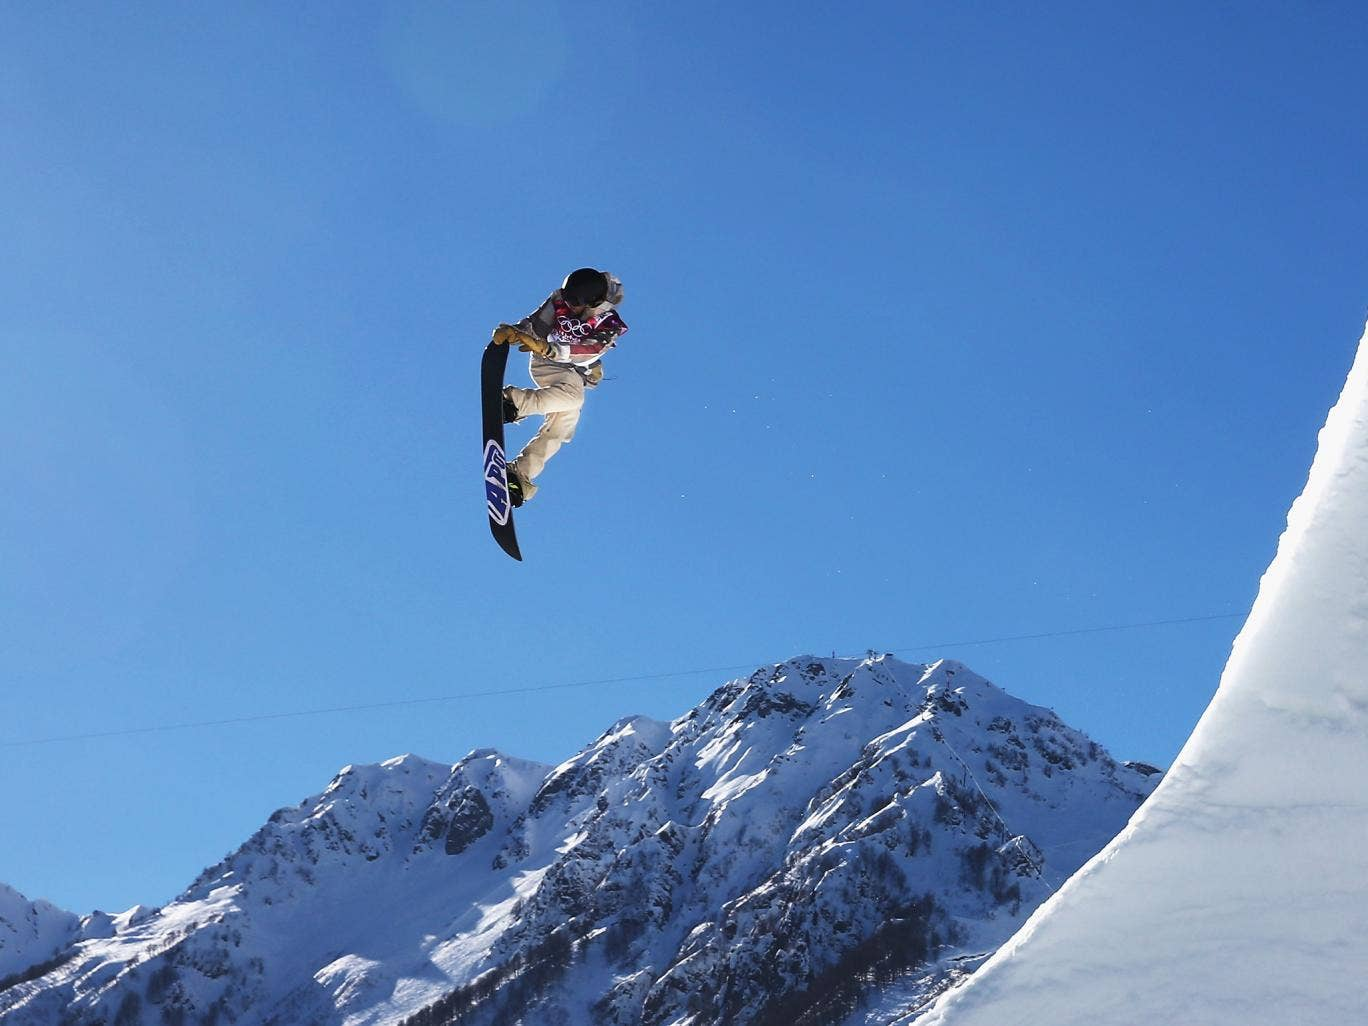 Sage Kotsenburg of the USA took gold in the snowboard slopestyle